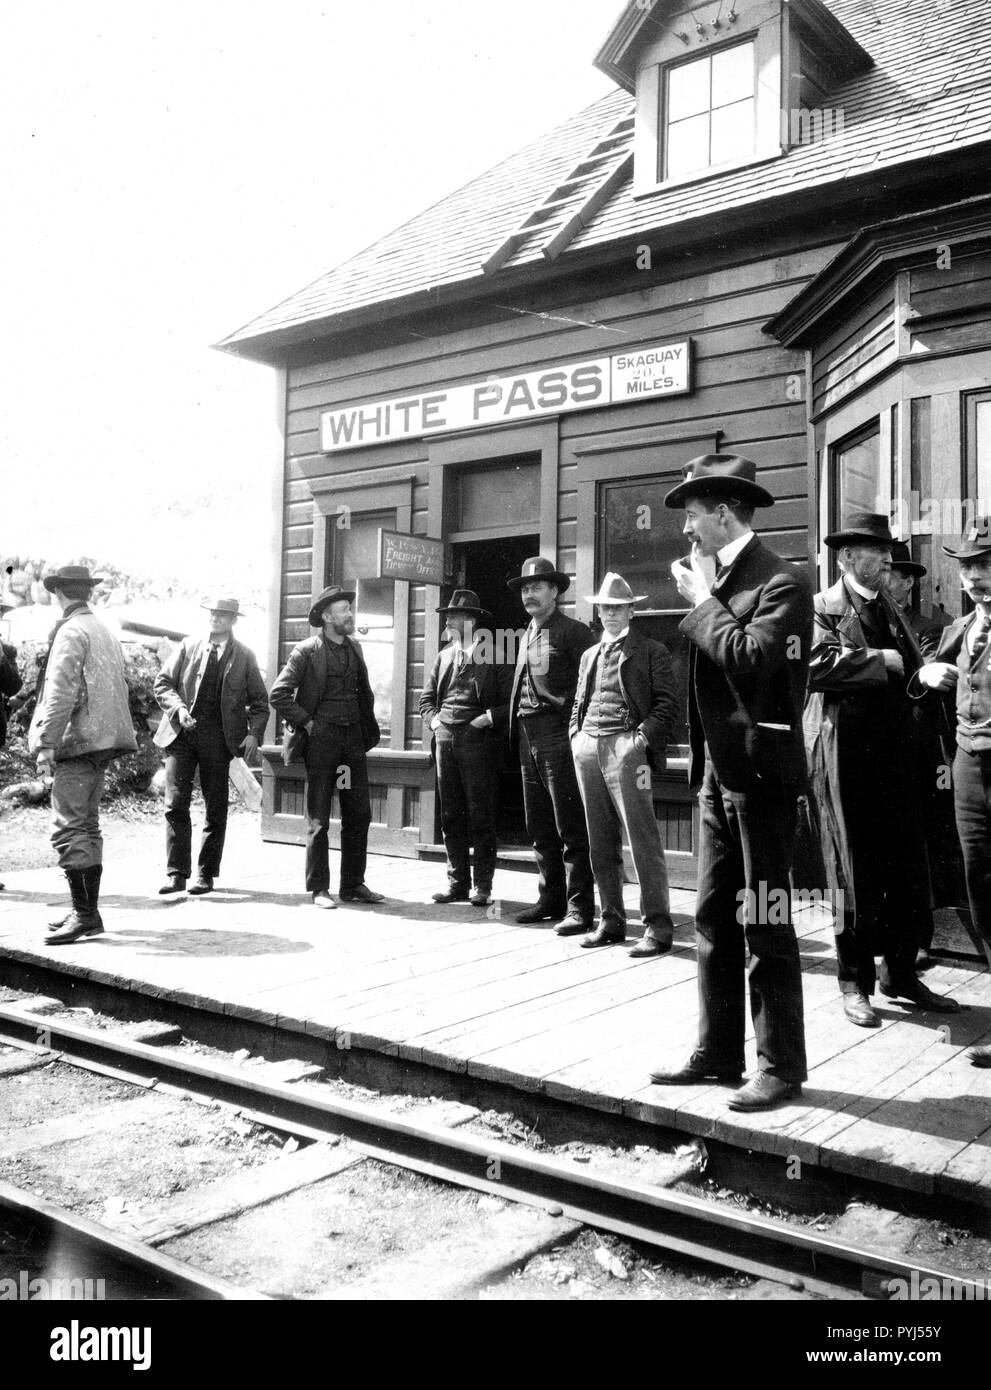 photo from 1900 of gentleman and prospectors standing at the White Pass & Yukon Railroad Station in Alaska - Stock Image